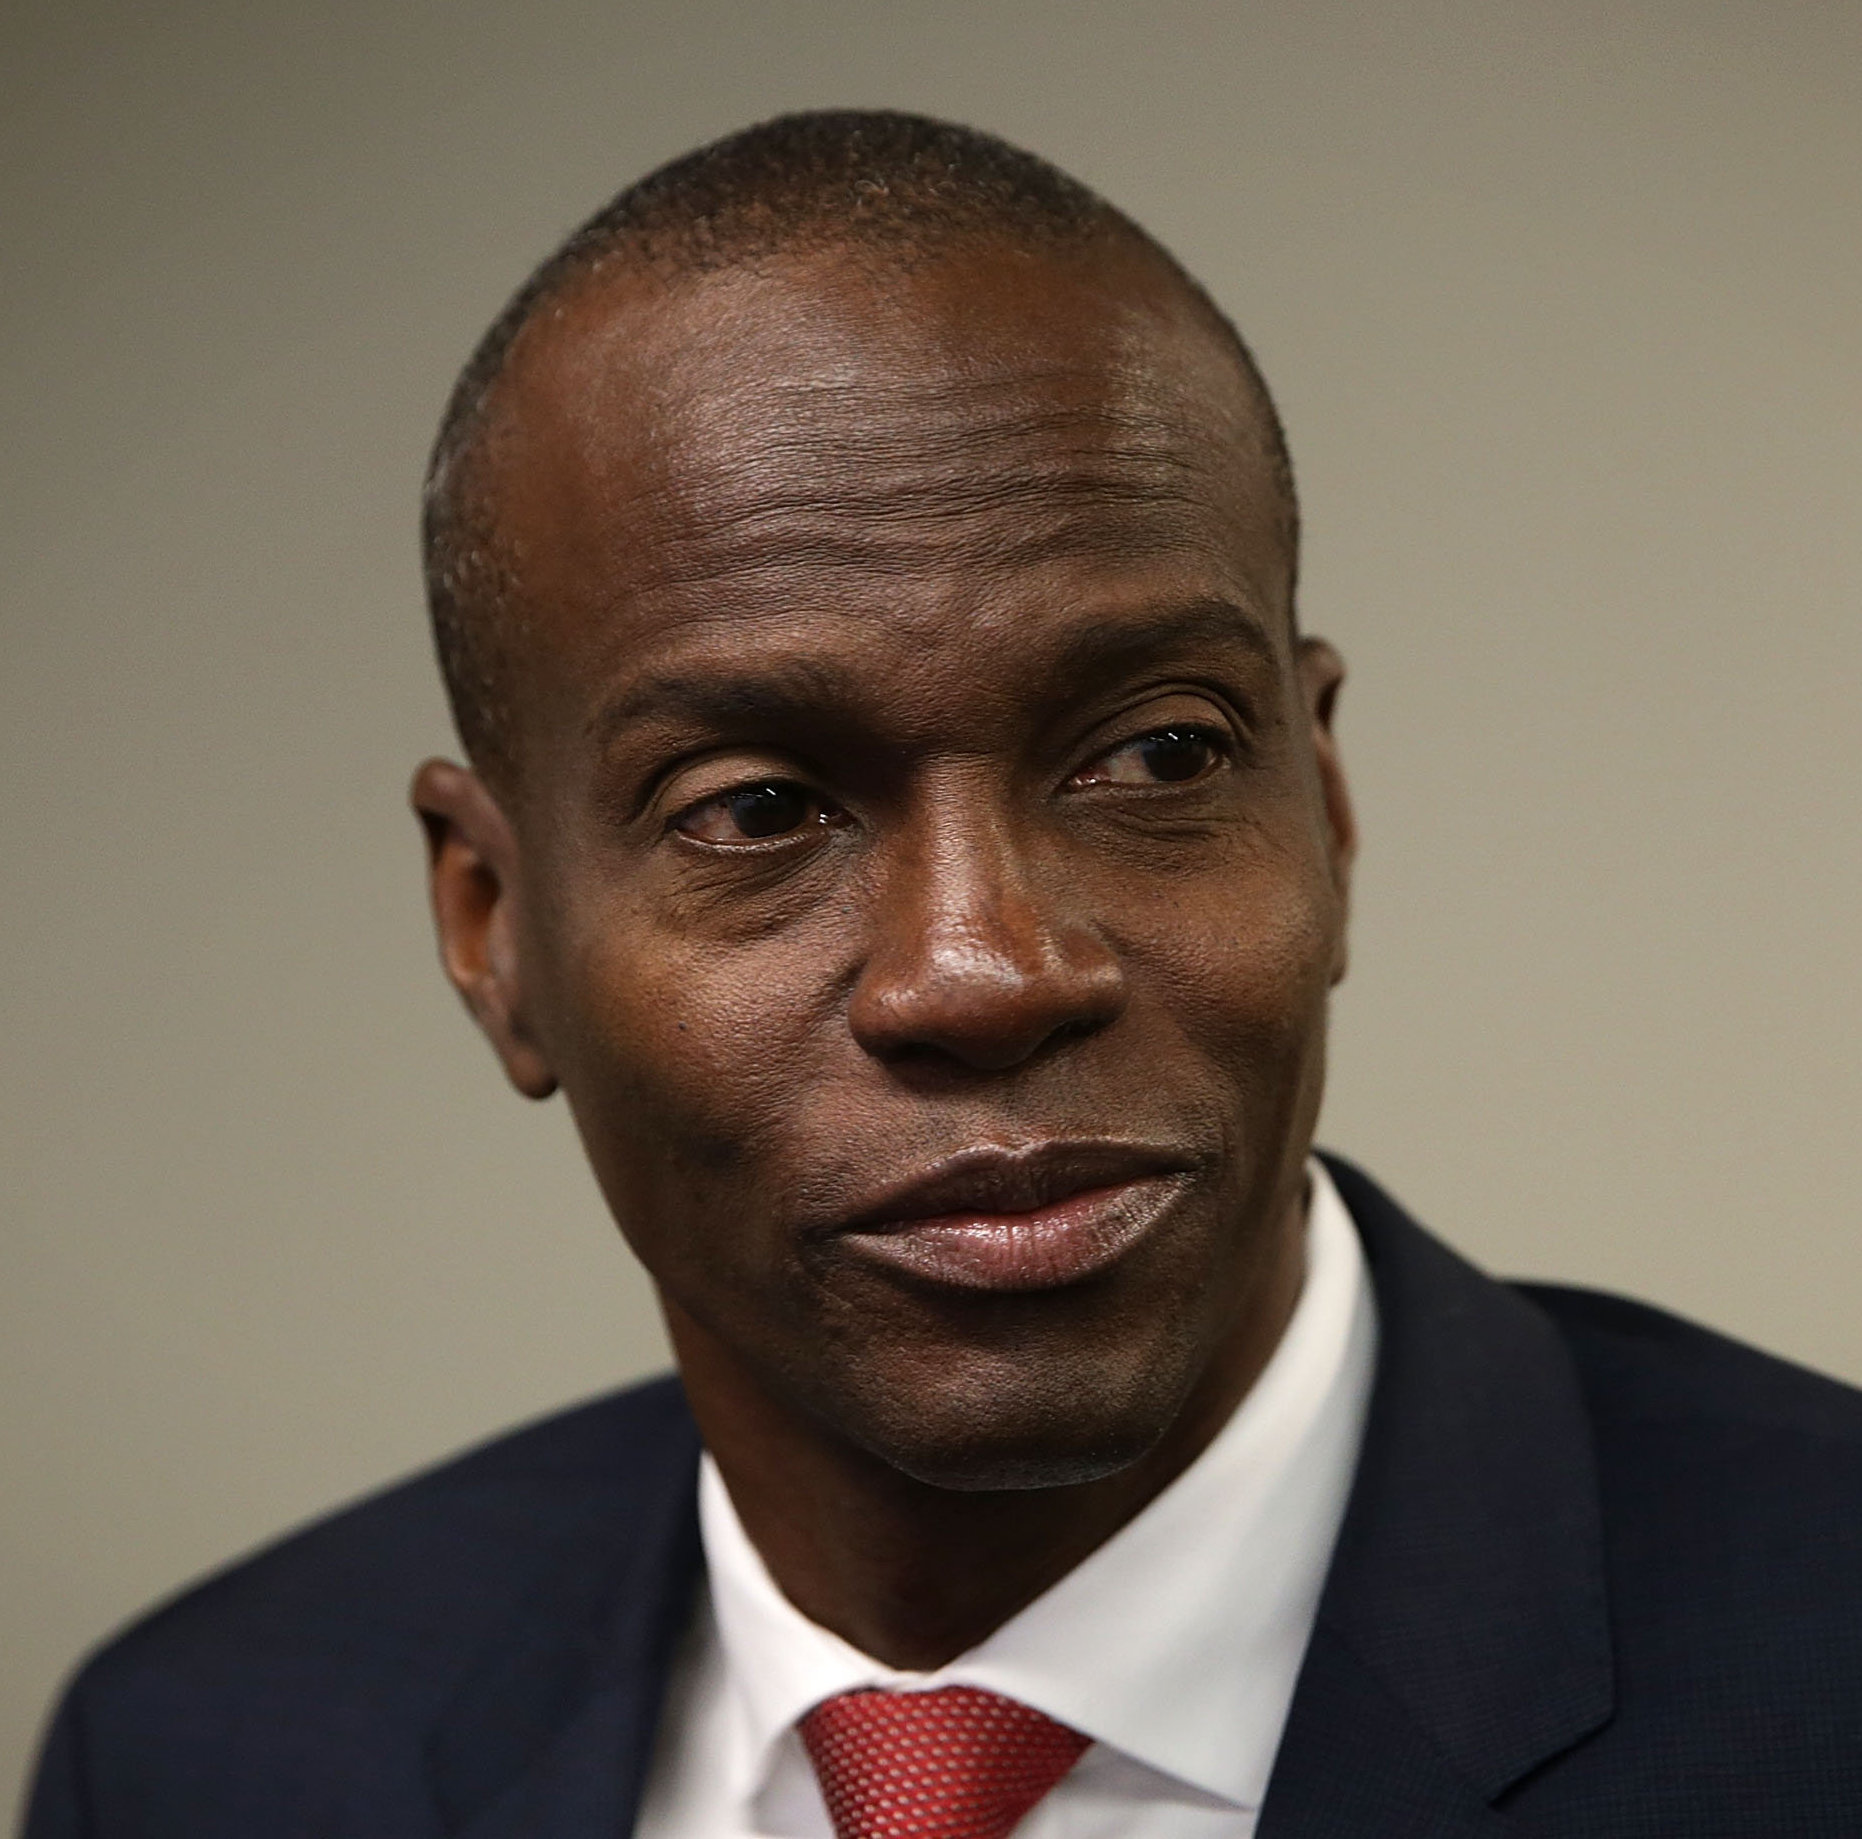 Haitian president Jovenel Moise said they wouldn't tolerate abuse